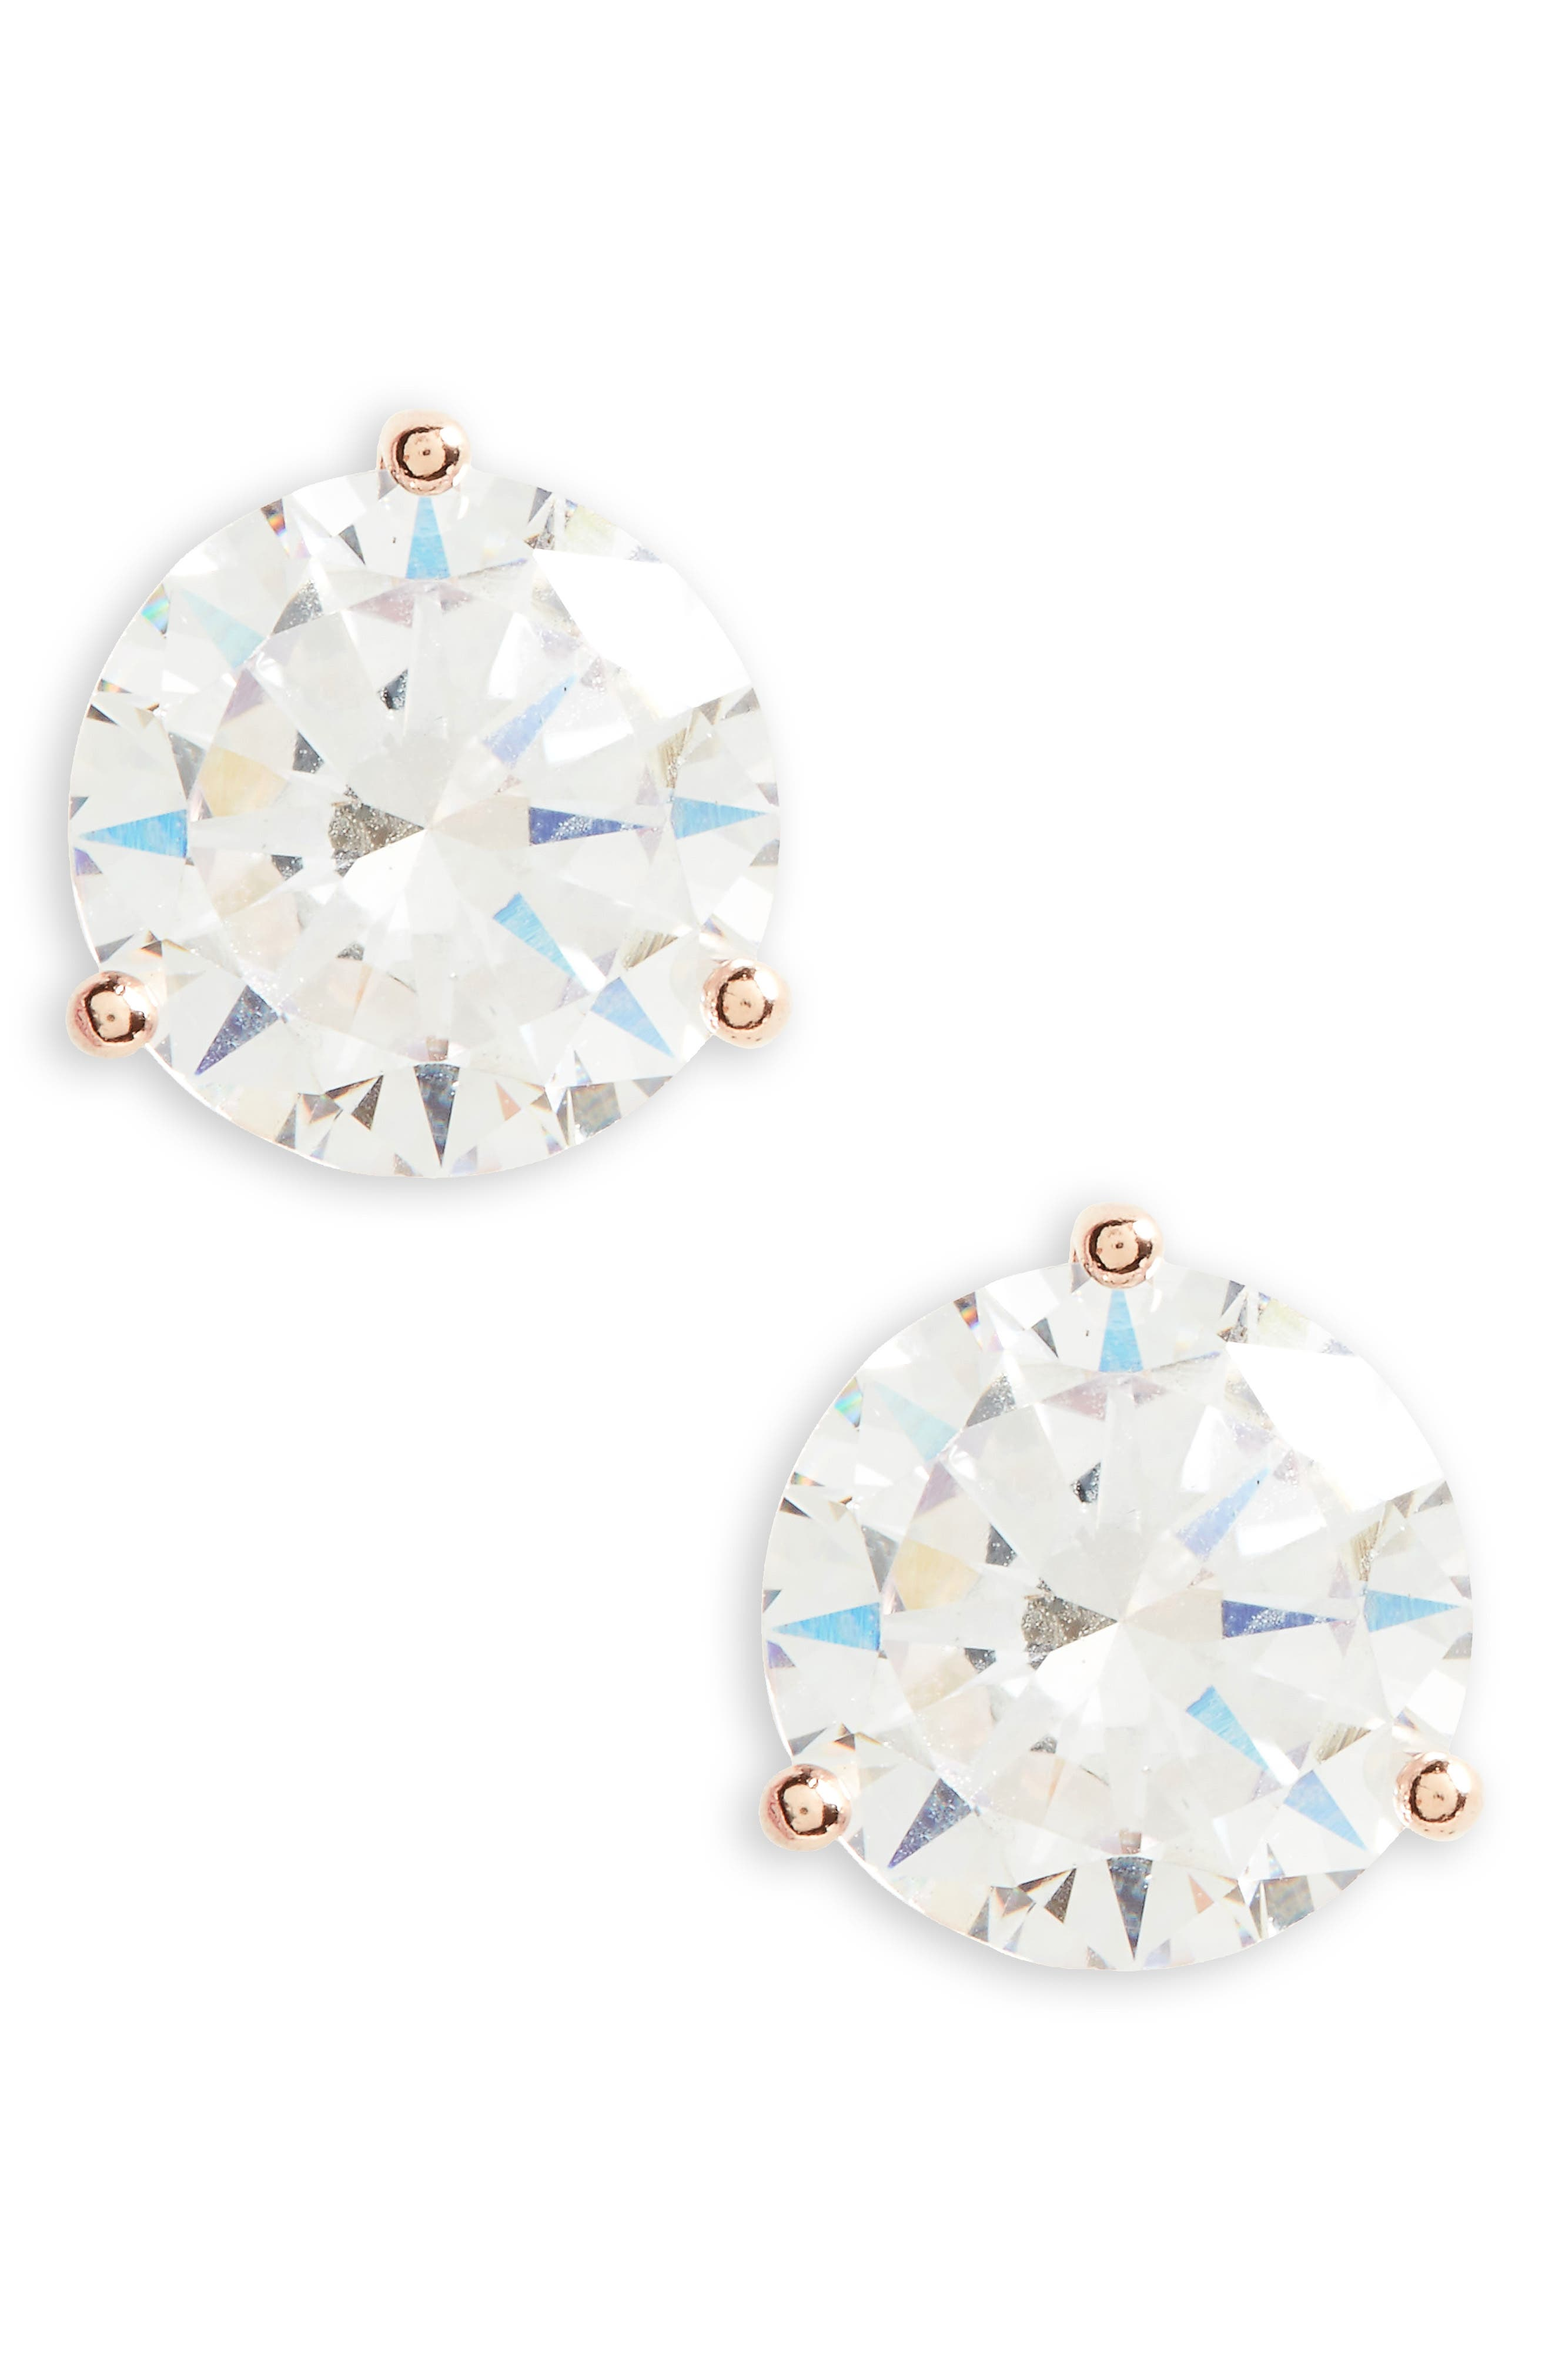 6ct tw Cubic Zirconia Stud Earrings,                         Main,                         color, Clear- Rose Gold